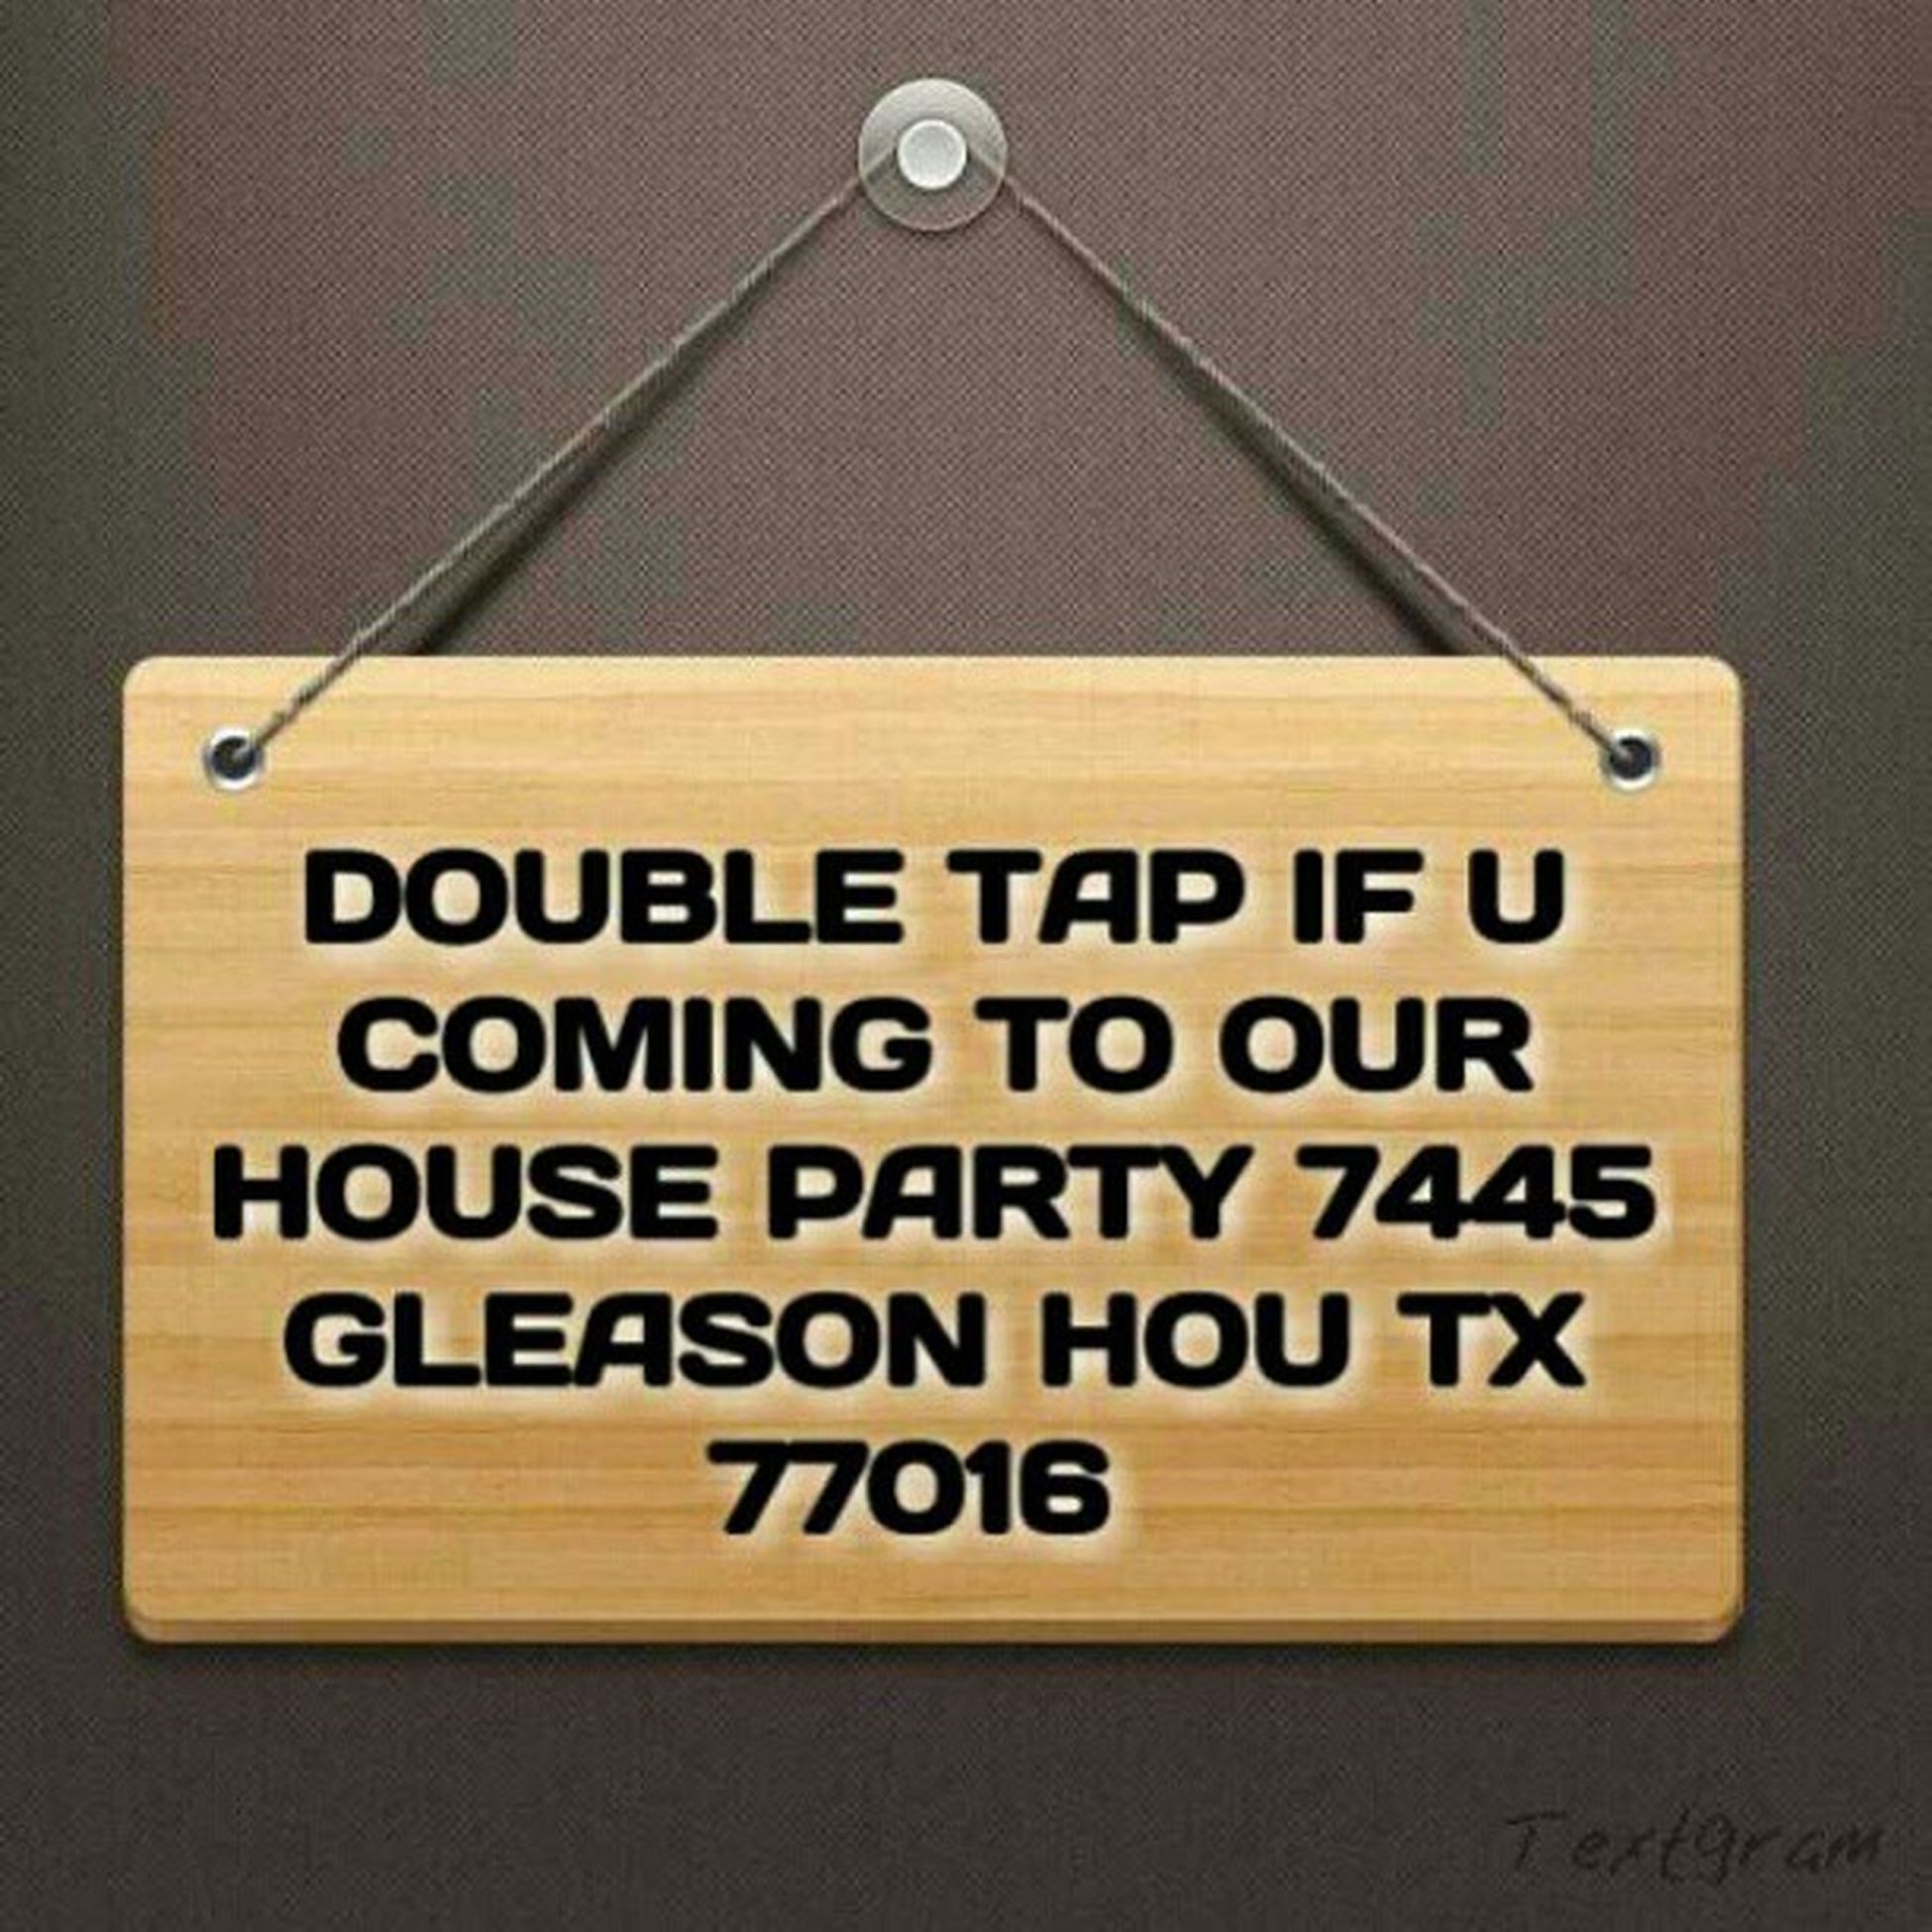 RT AfterDarkHousePARTY Tommorow Jan12 FREE liquor free Food ↓↓↓ 7445 gleason 77016 Dj Hurk In MIX!!! TURN UP!!! 2:00